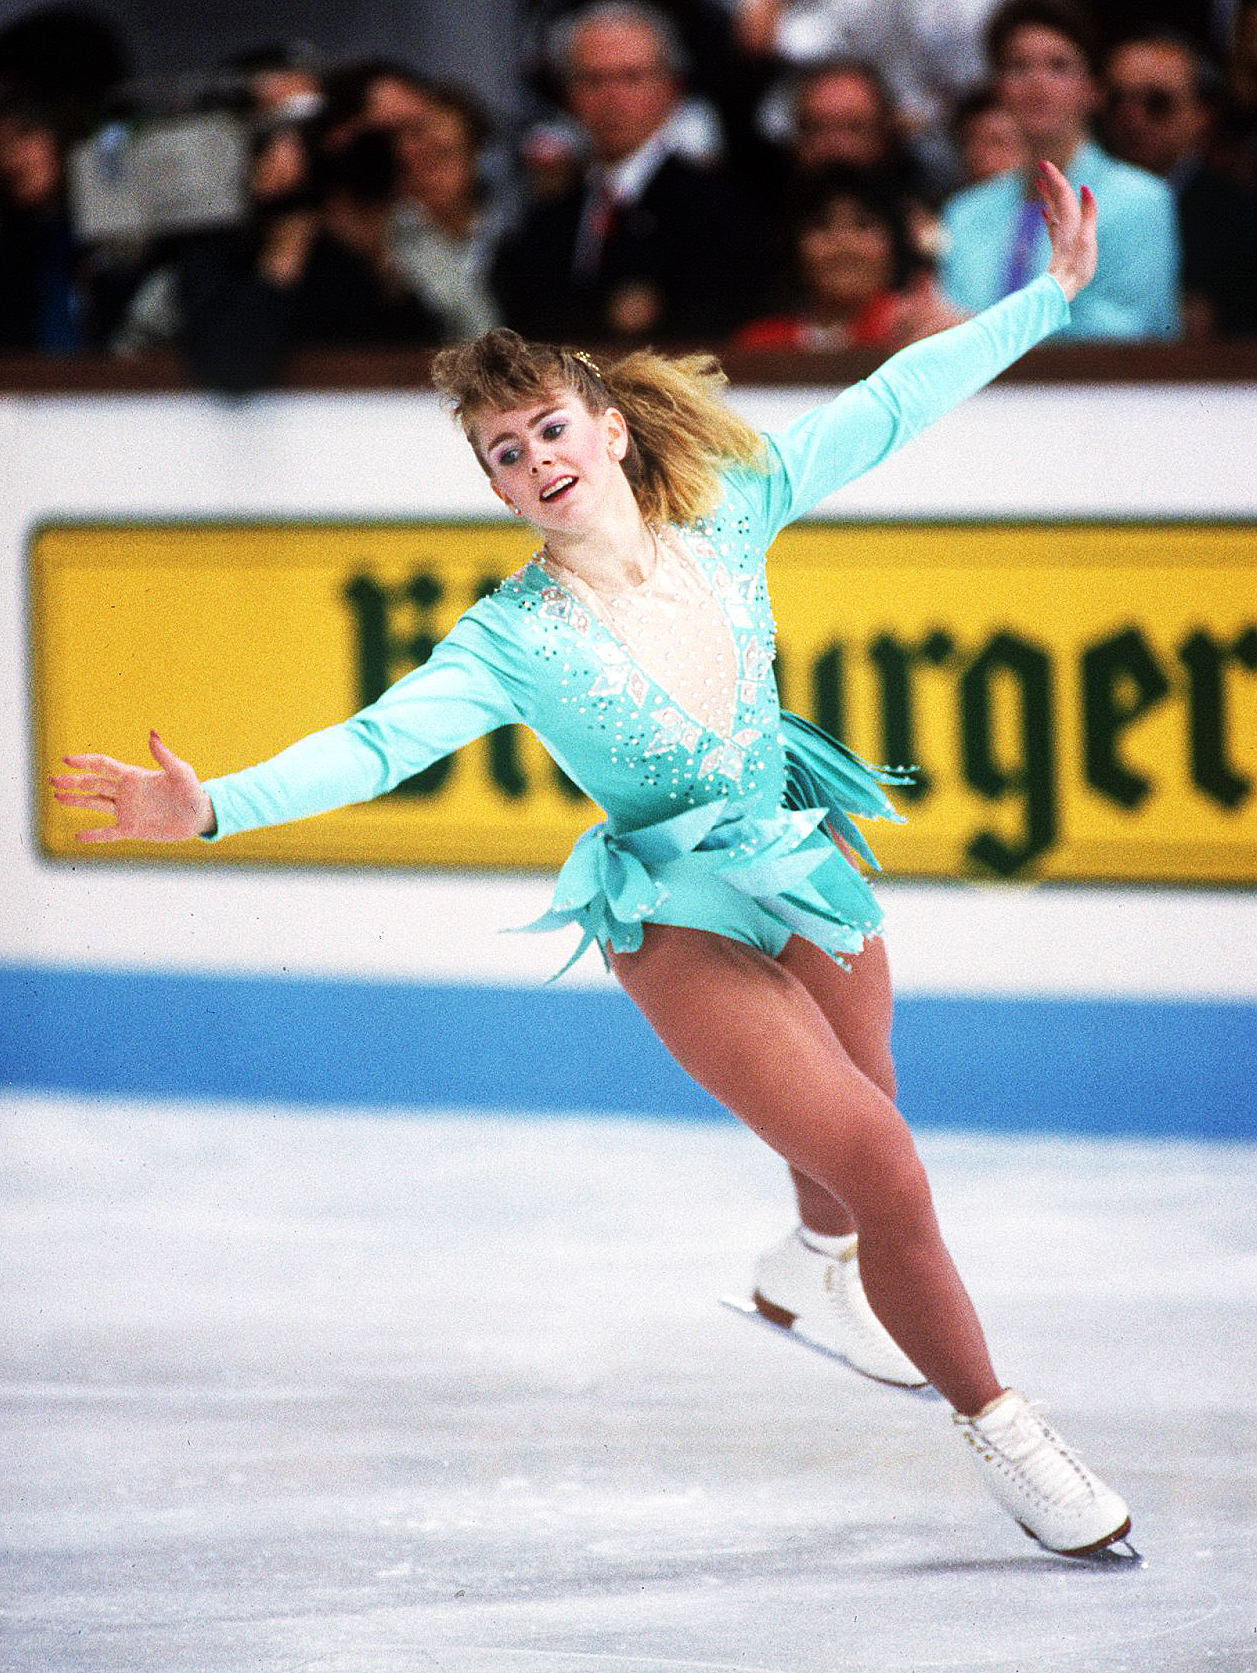 Tonya Harding World Figure Skating Championships 1991 Munich